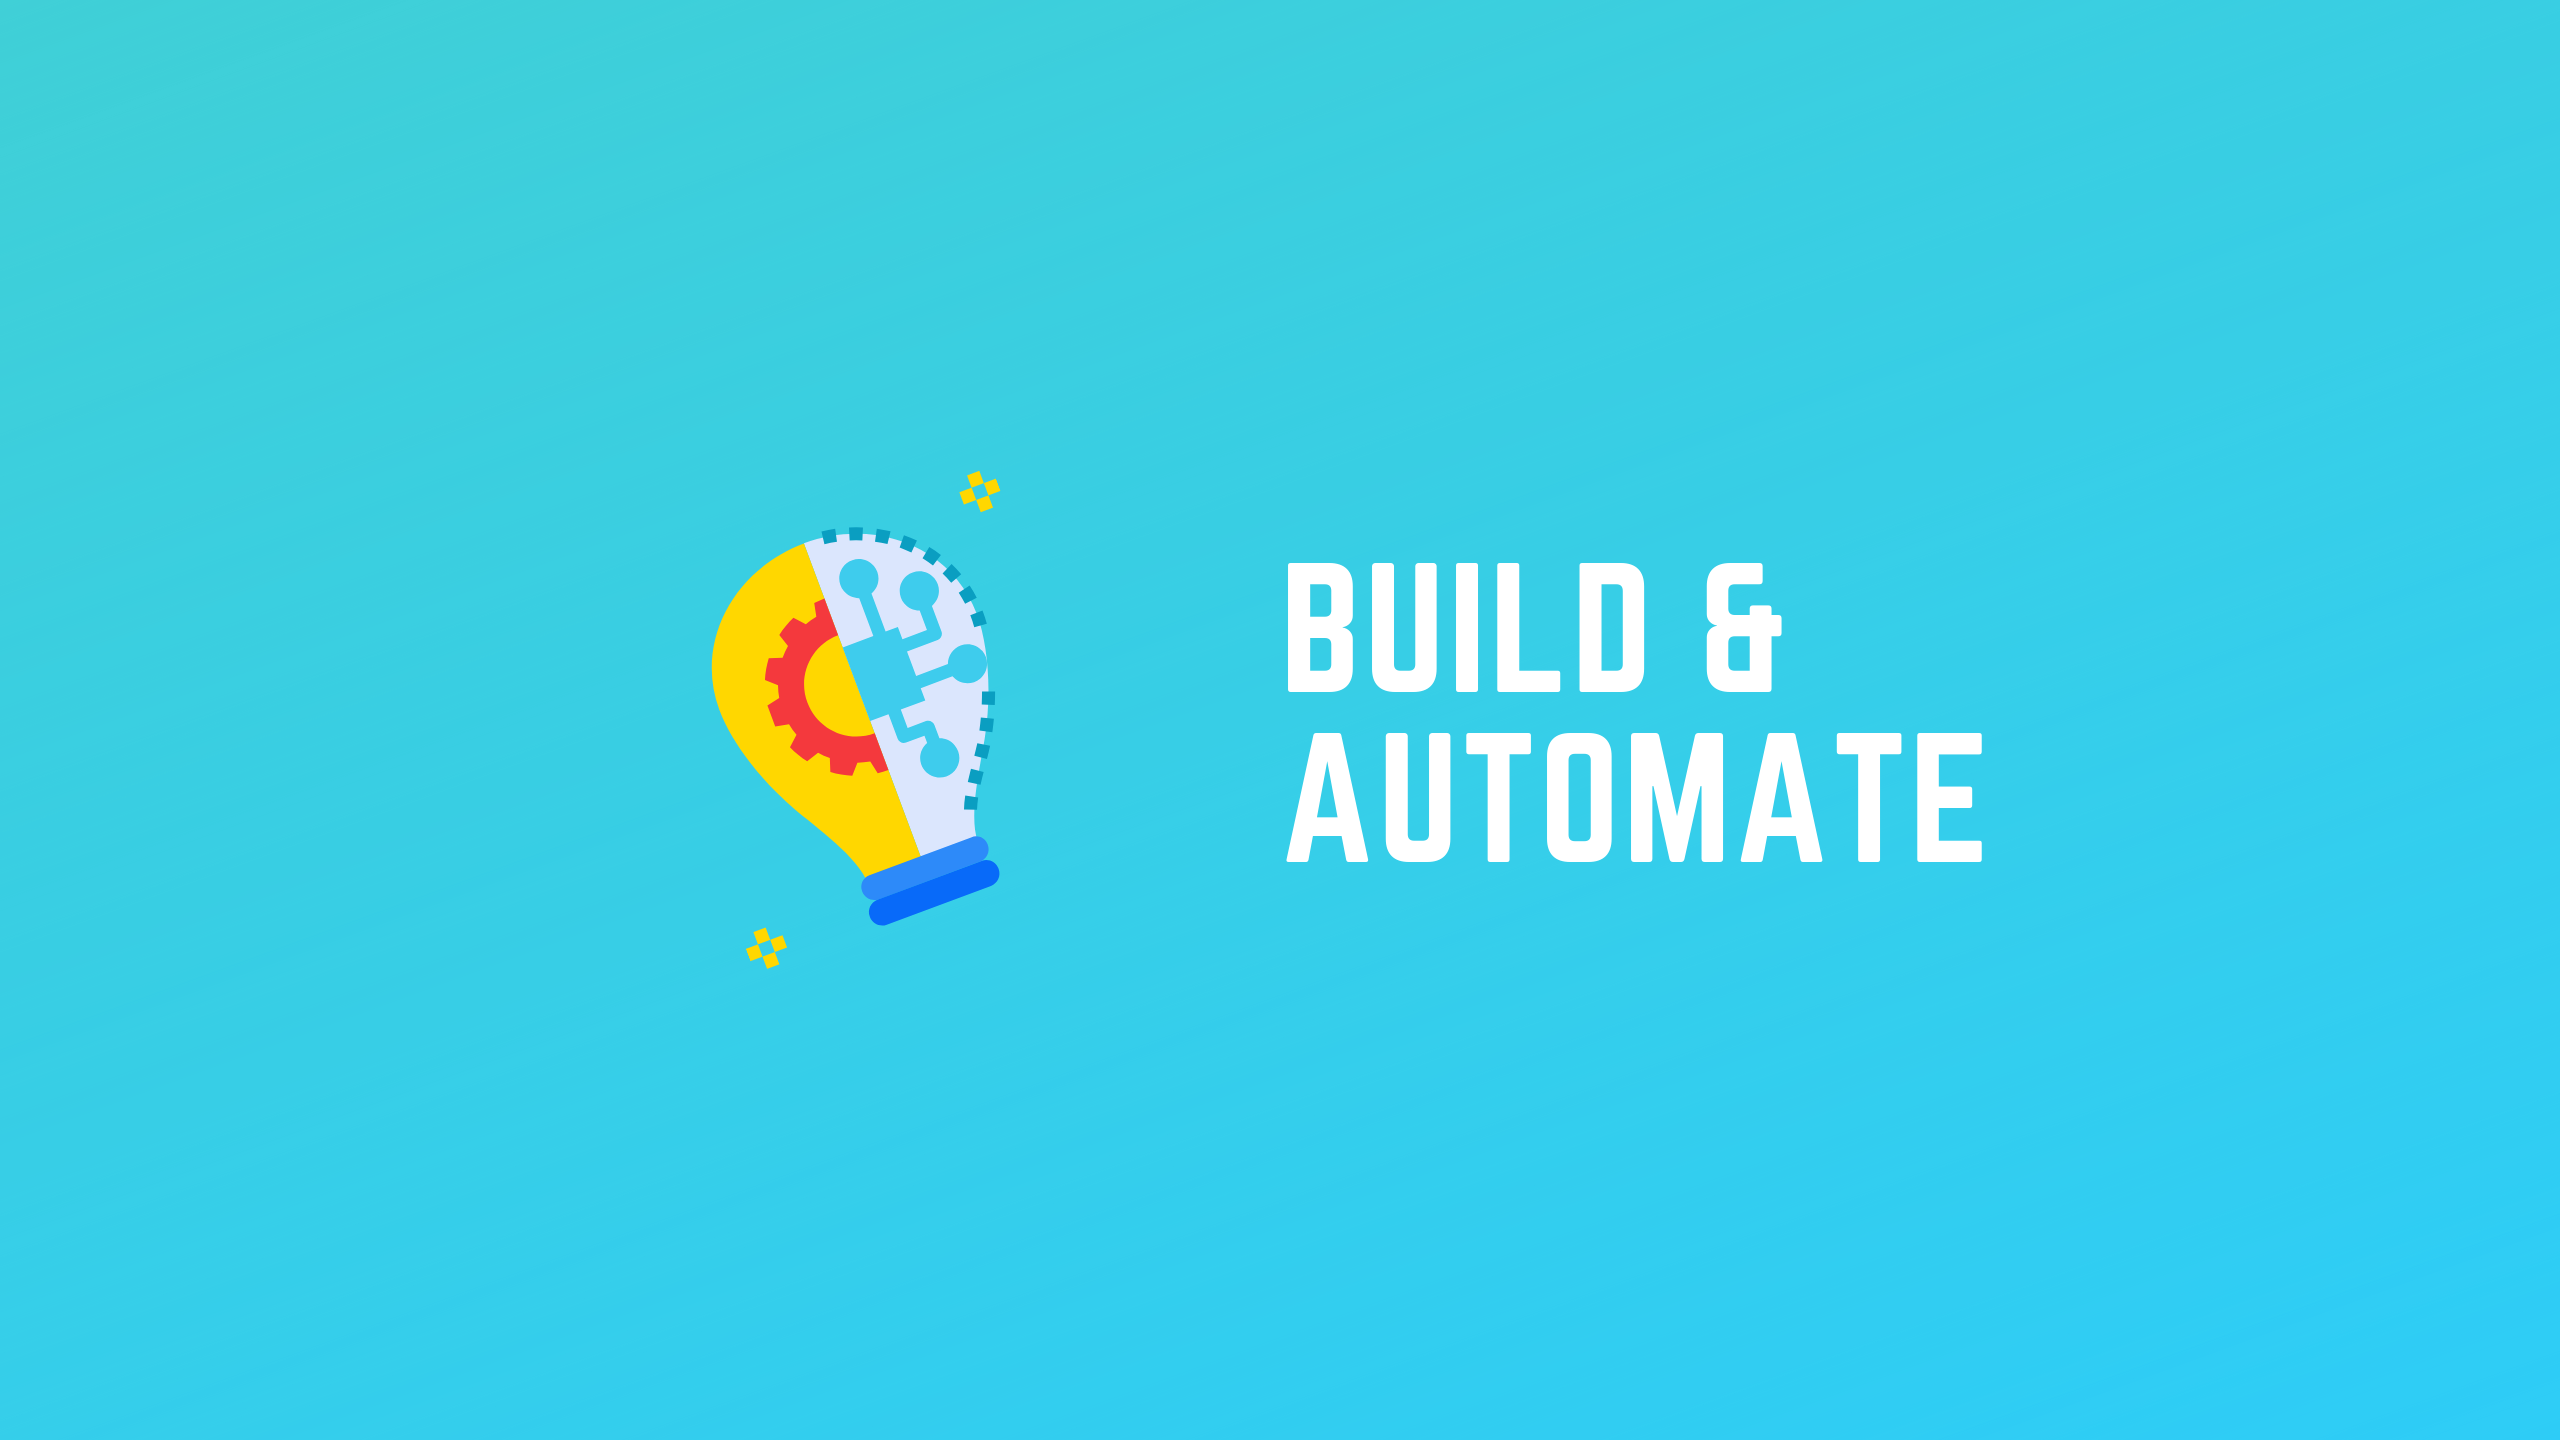 Build & Automate, My YouTube Channel